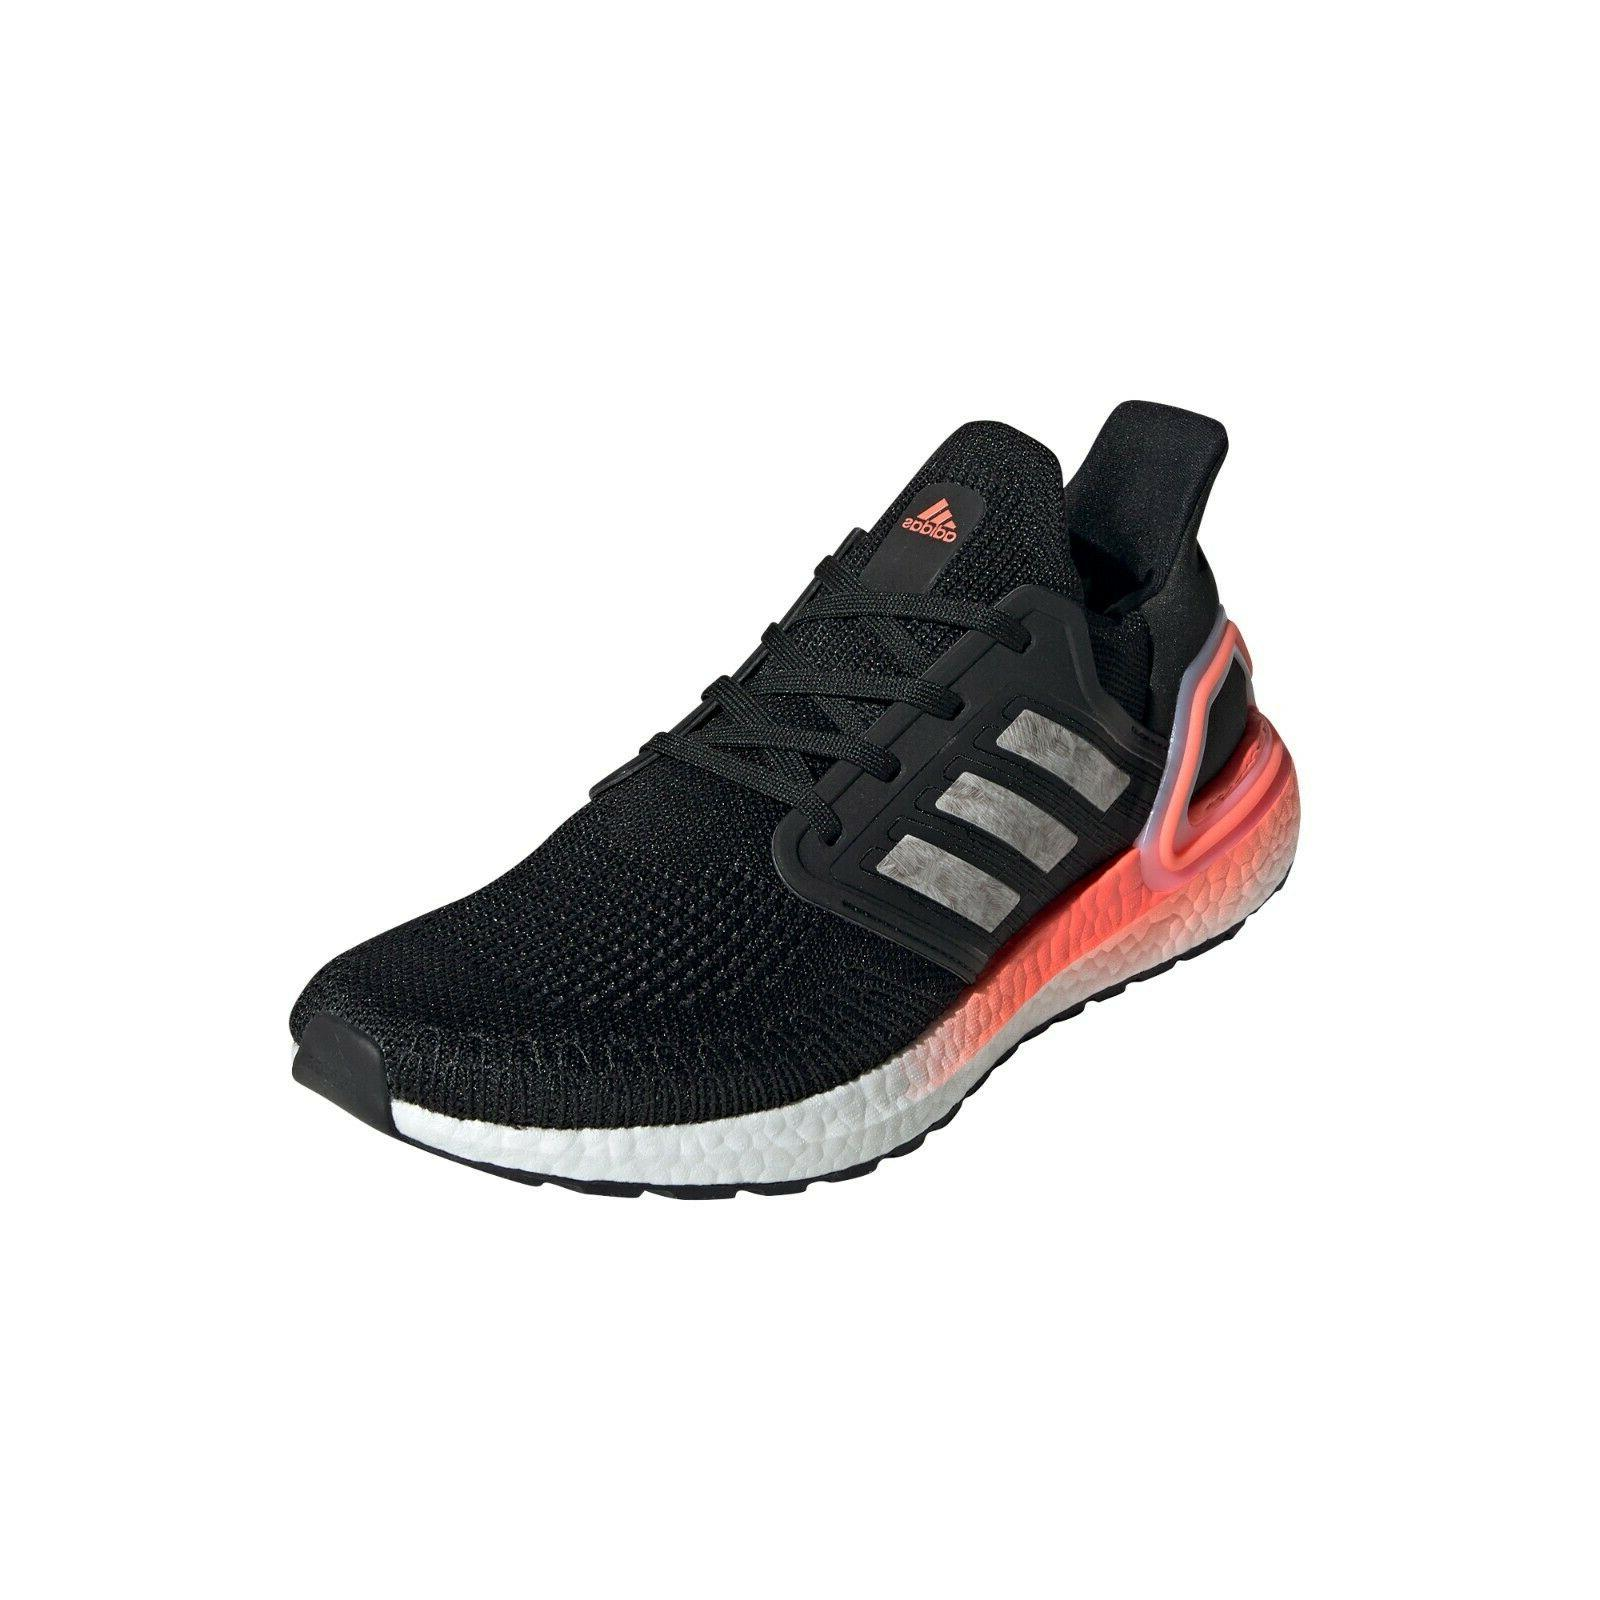 Adidas Running Shoes Athletic Sneaker Trainer